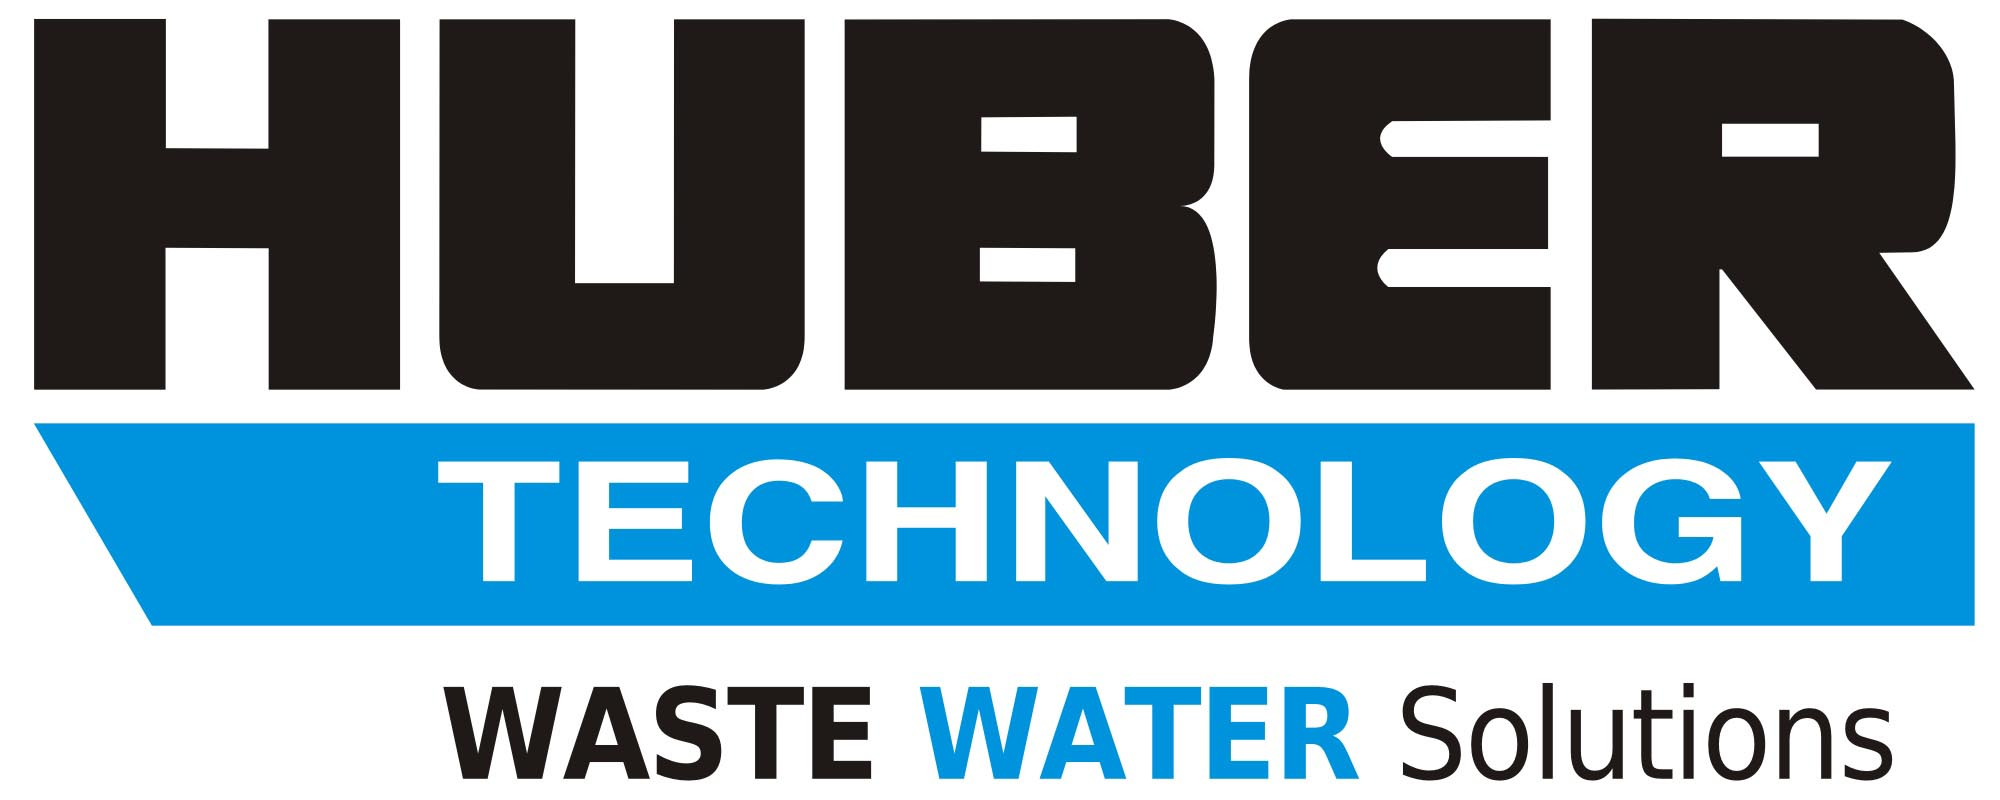 huber_logo_wastewatersolutions_high_2019.jpg